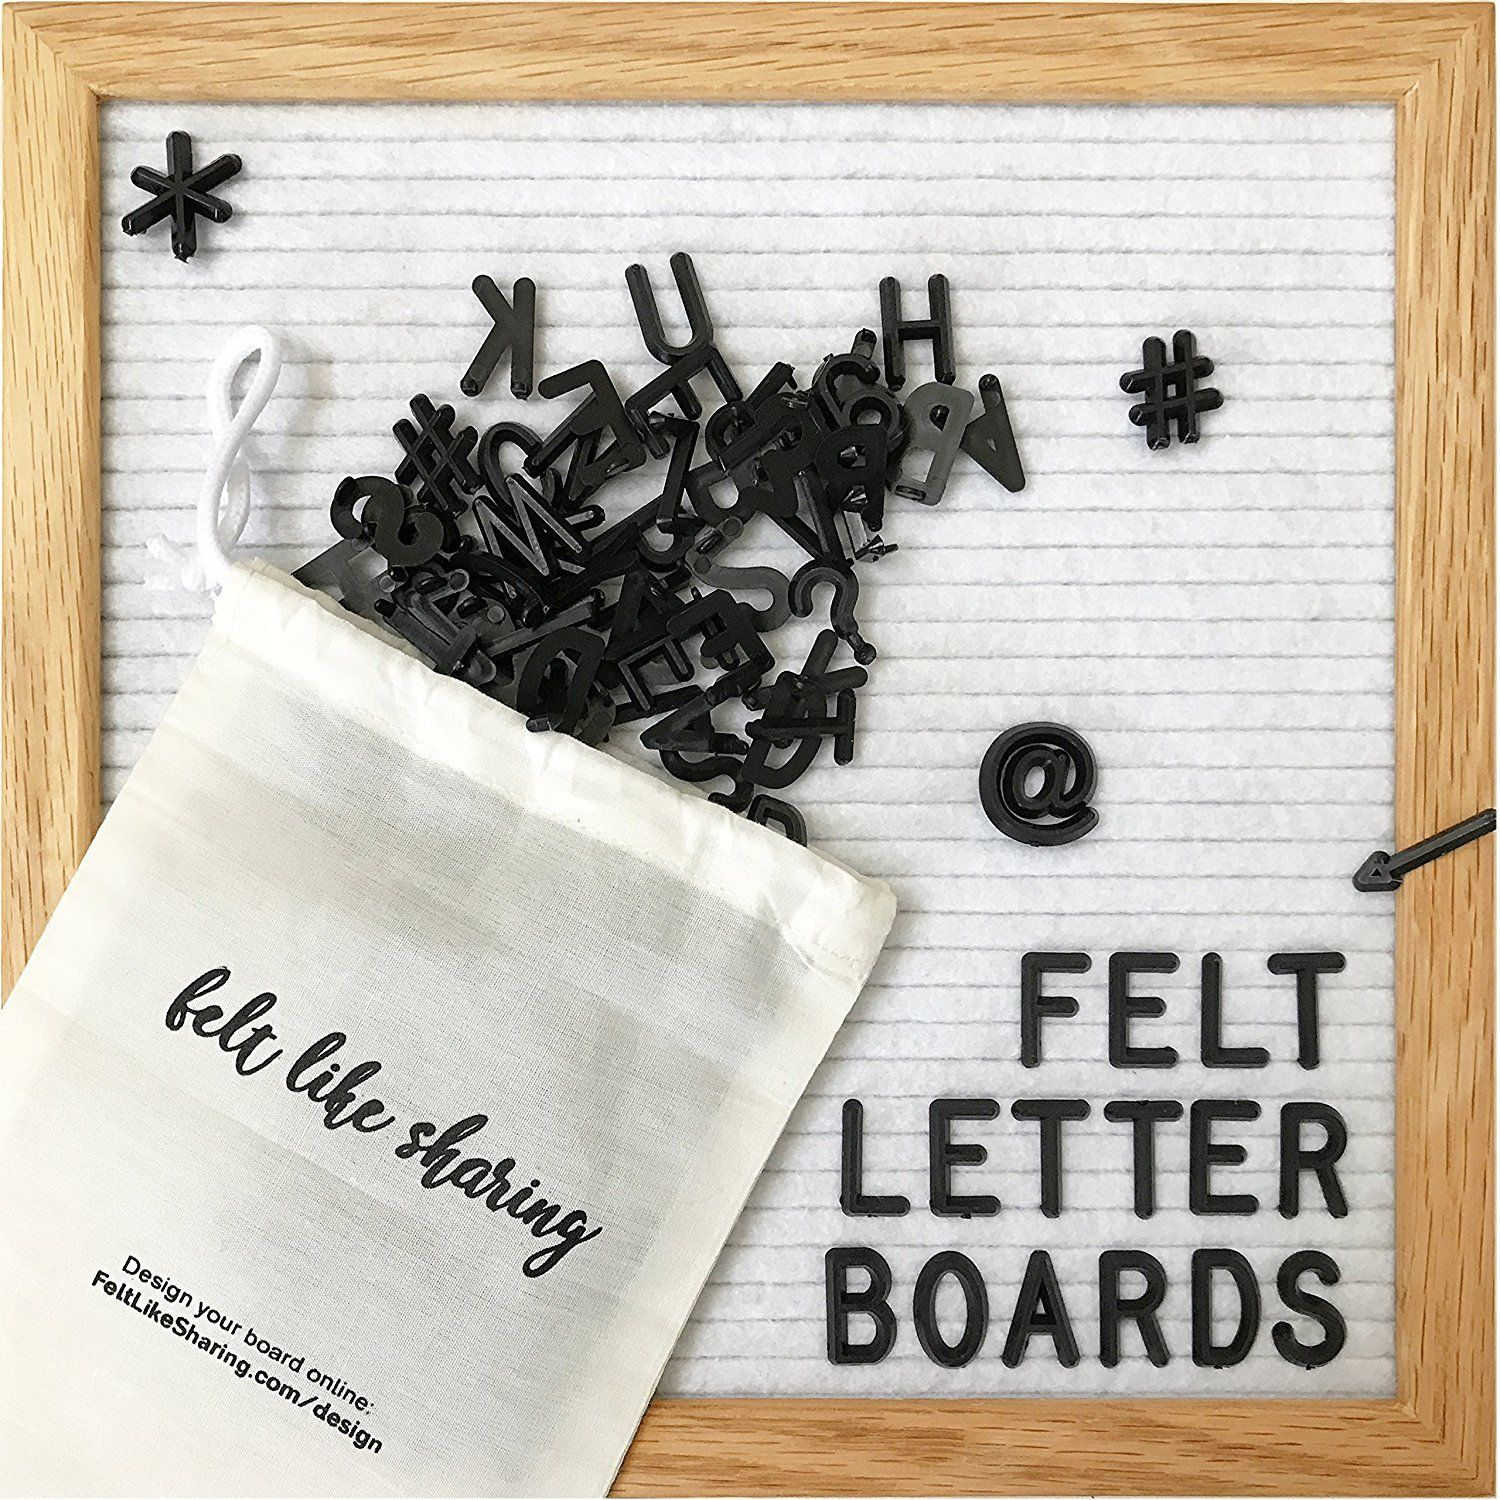 Amazon.com : White Felt Letter Board 10x10 Inches. Changeable Letter ...